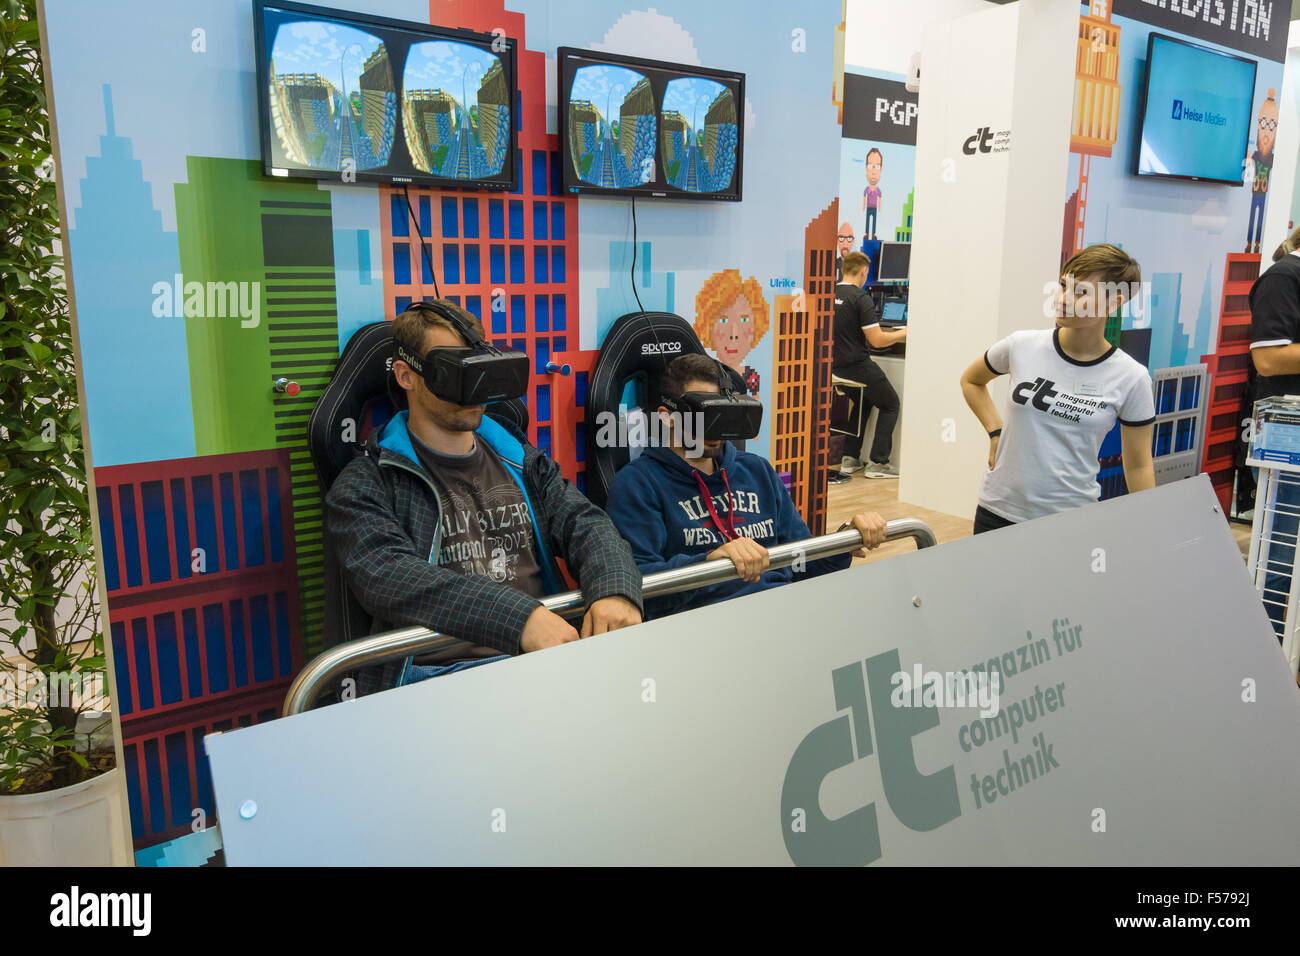 Virtual Exhibition Stand : Stand for testing virtual reality equipment oculus rift